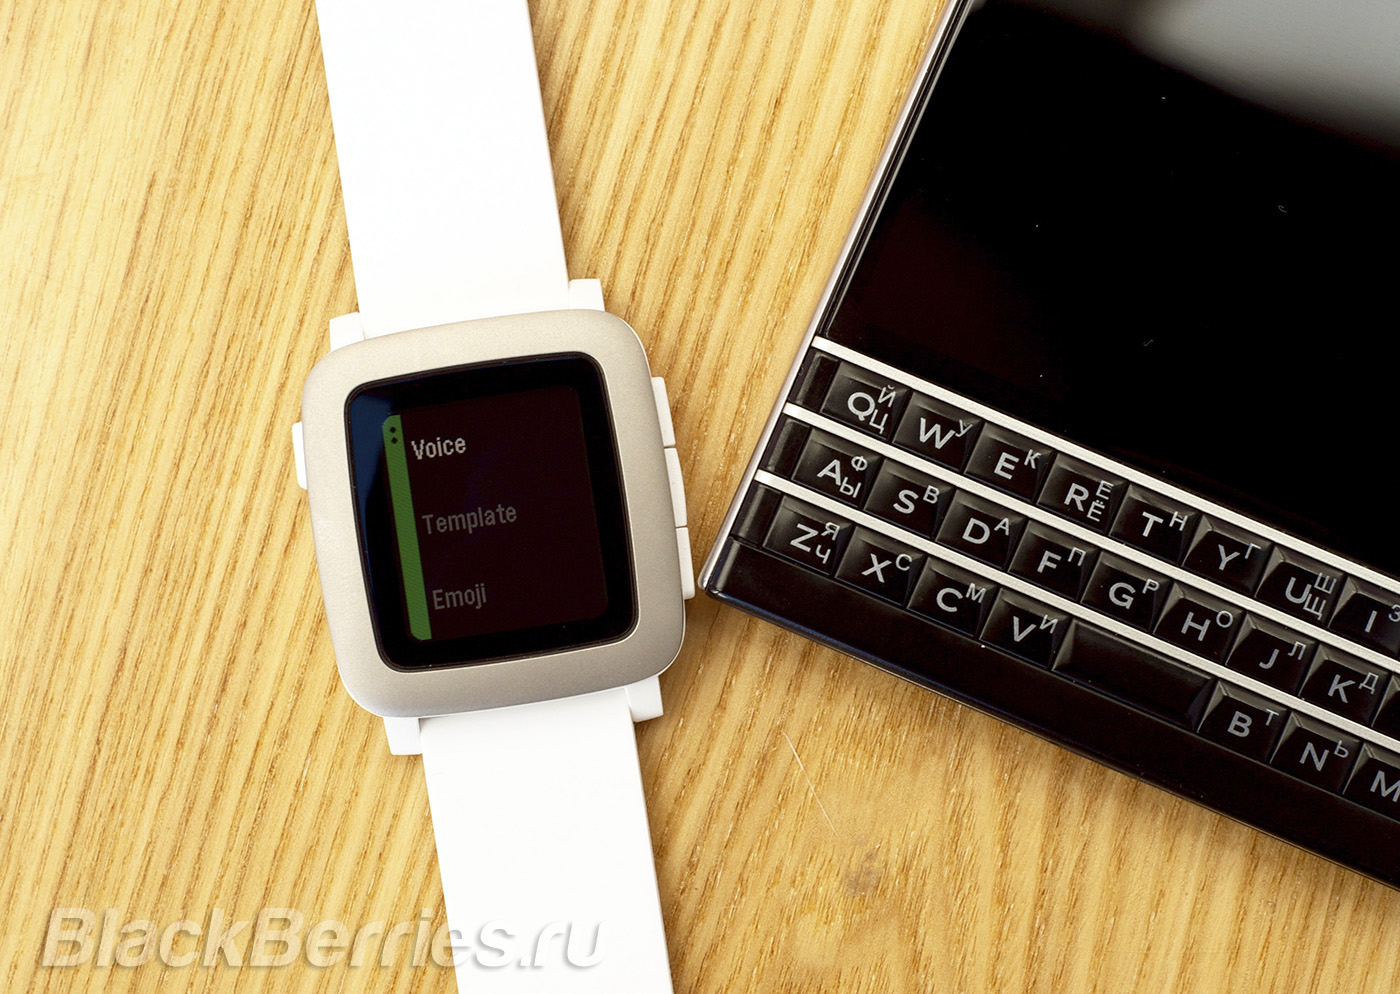 BlackBerry-Passport-Pebble-Time-07